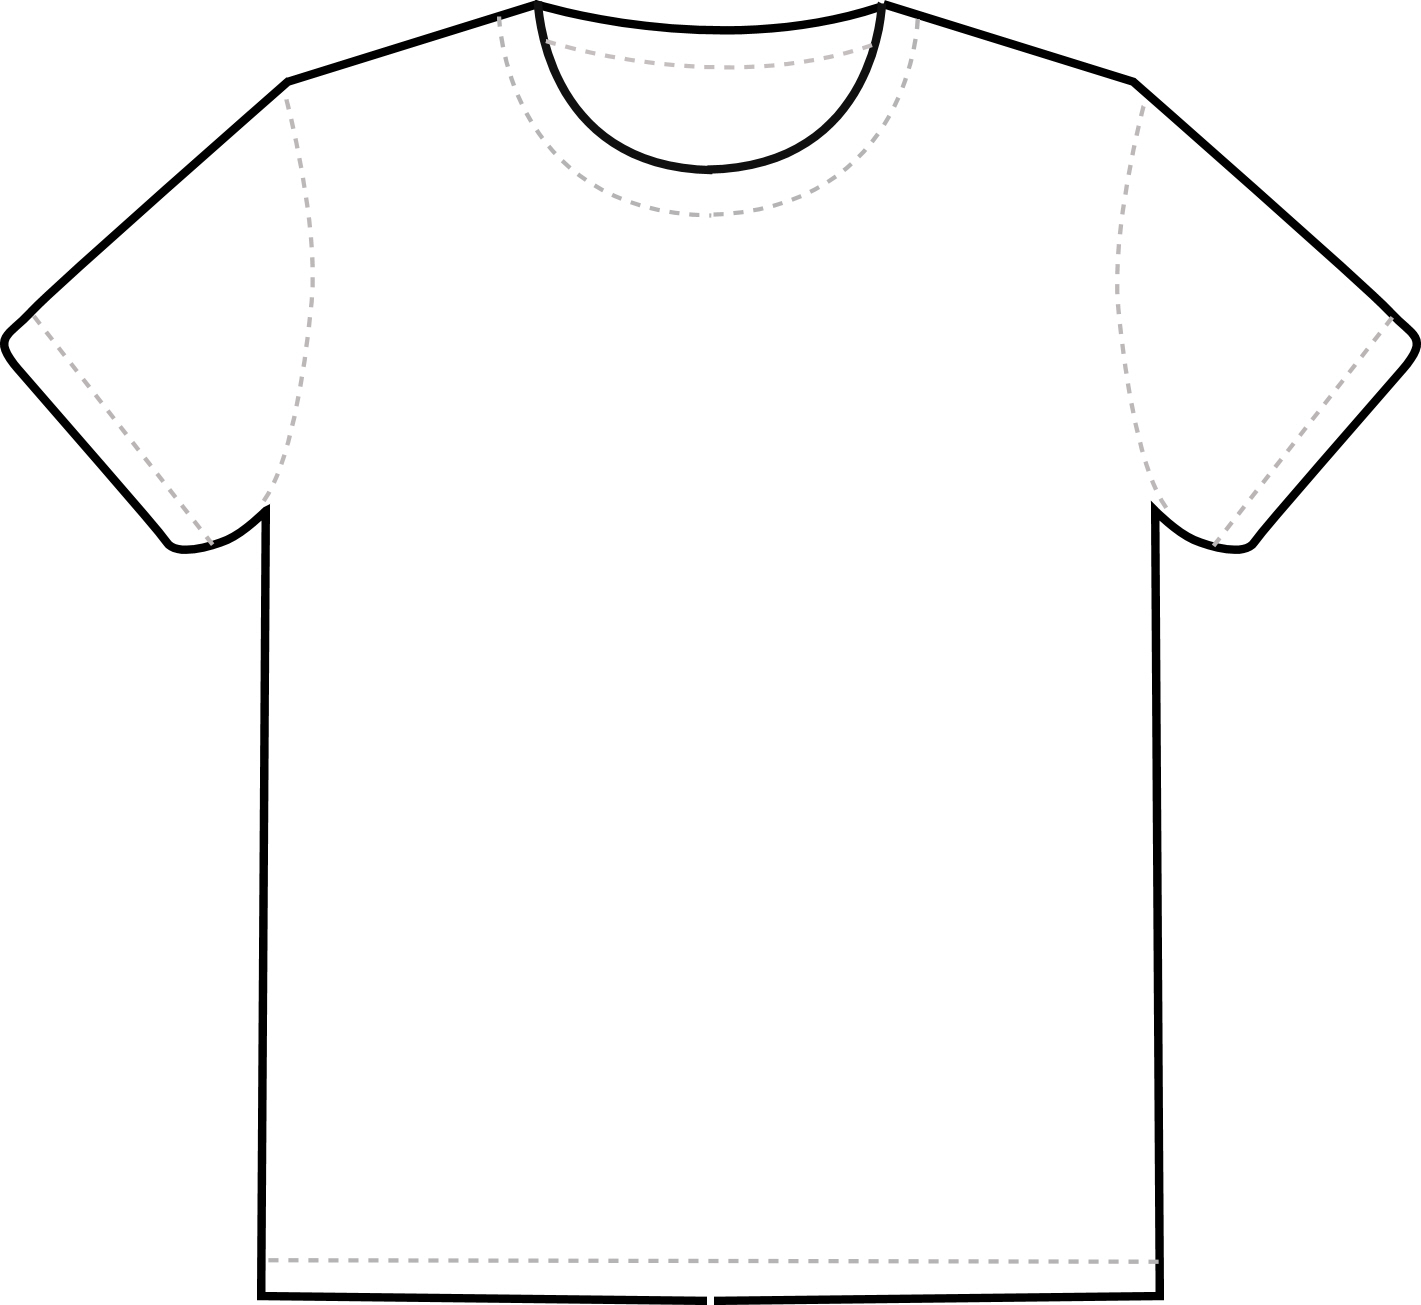 Shirt clipart vector t Library Outline Free Tee Clipart